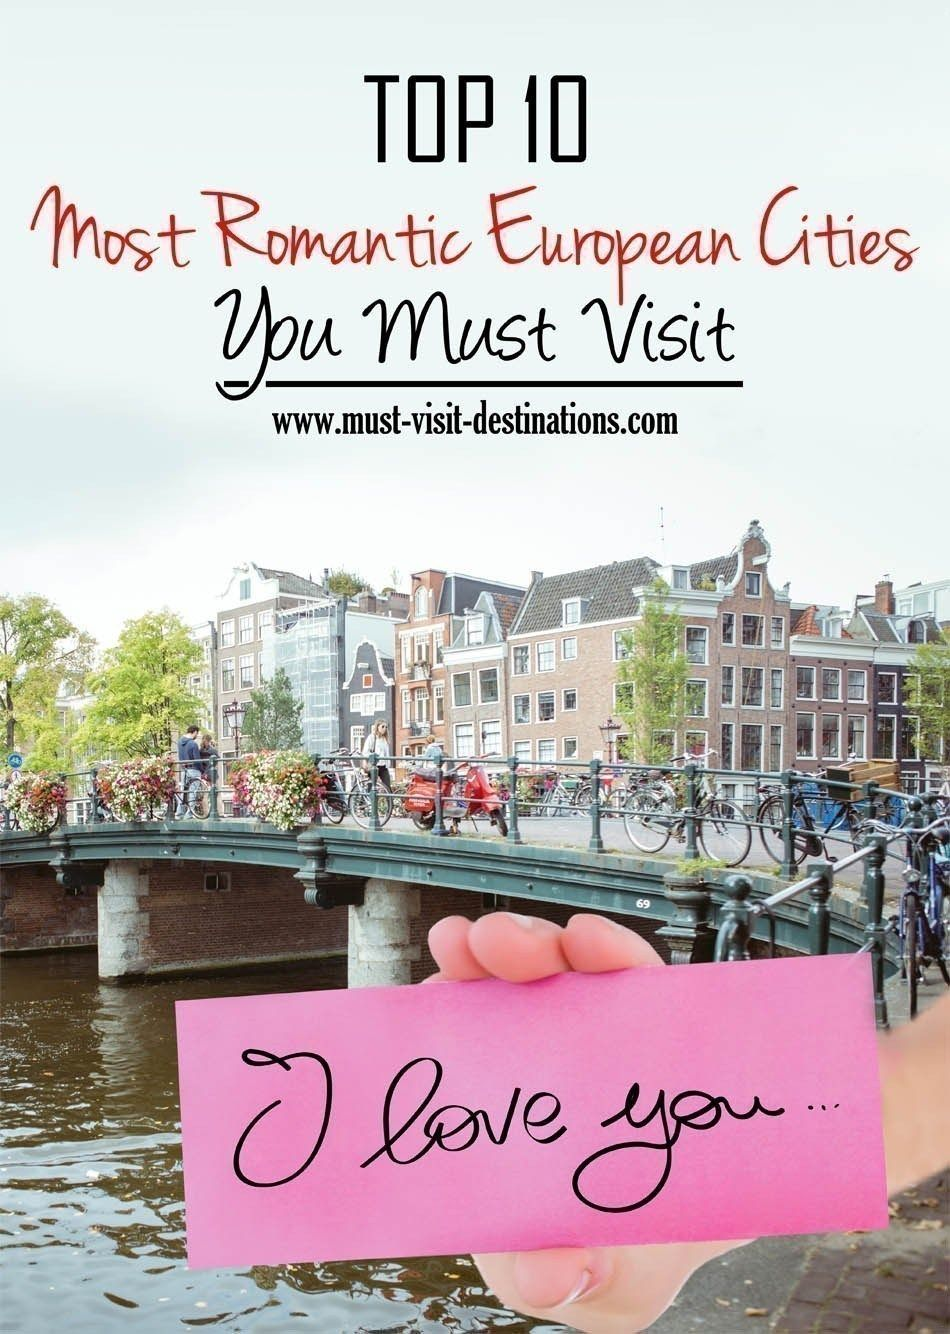 TOP 10 Most Romantic European Cities You Must Visit